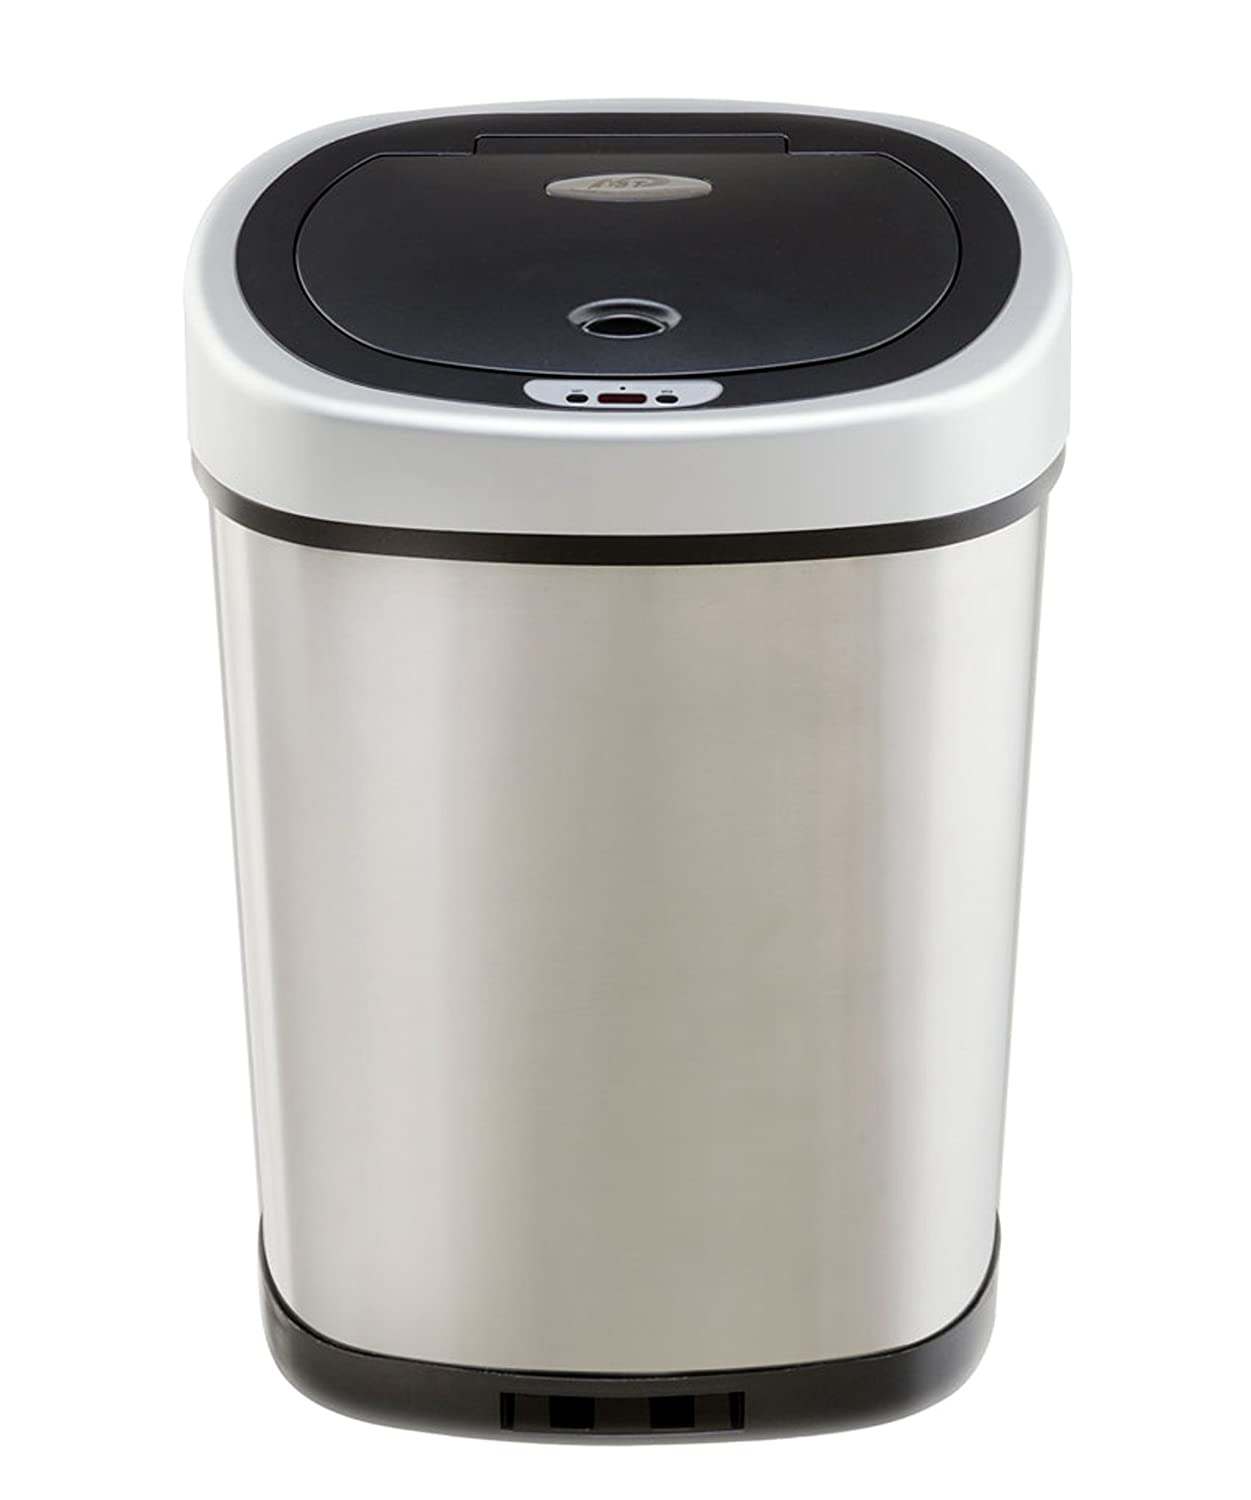 Trash Cans Kitchen Best Kitchen Garbage Cans News To Review